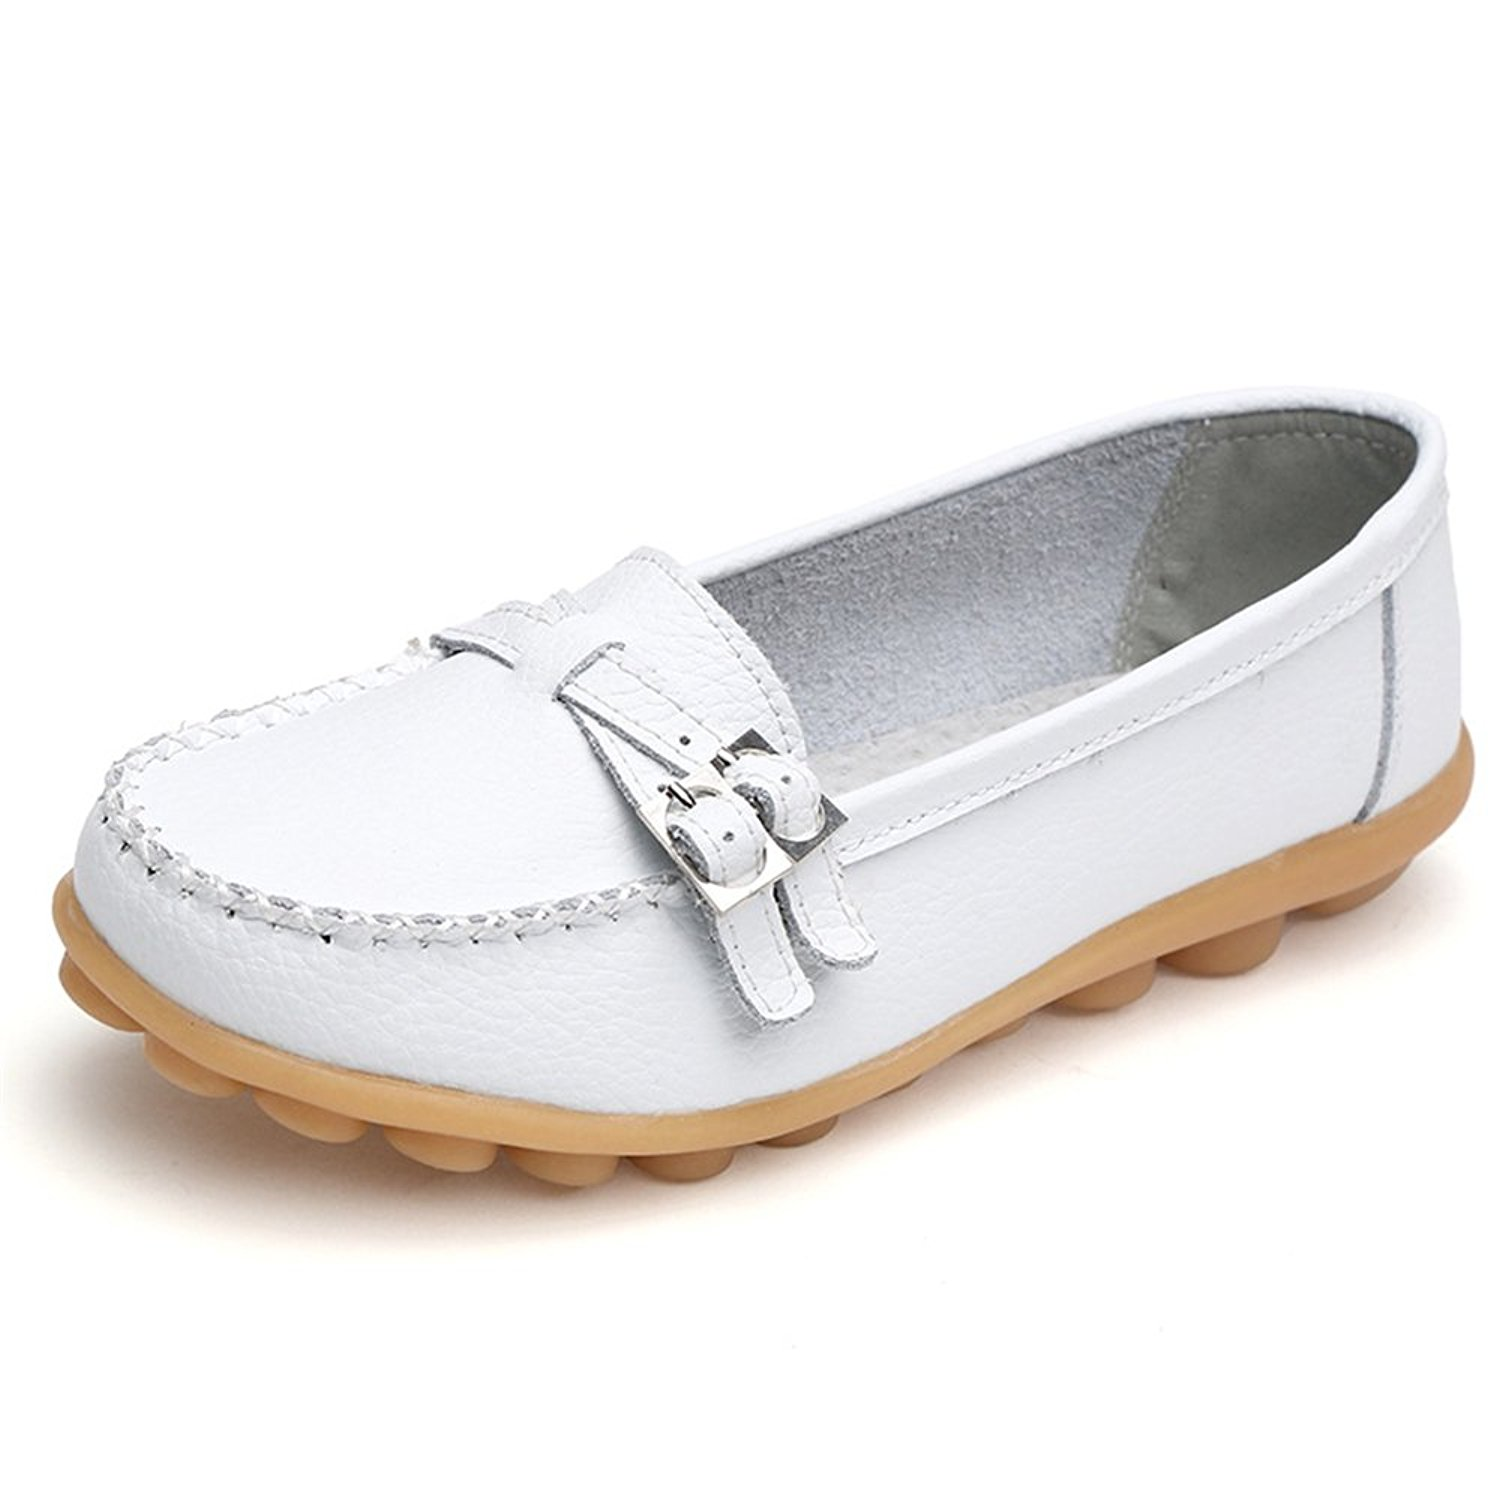 d7943910302 Get Quotations · Womens Cowhide Leather Lace-up Driving Shoes Loafers Boat  Shoes